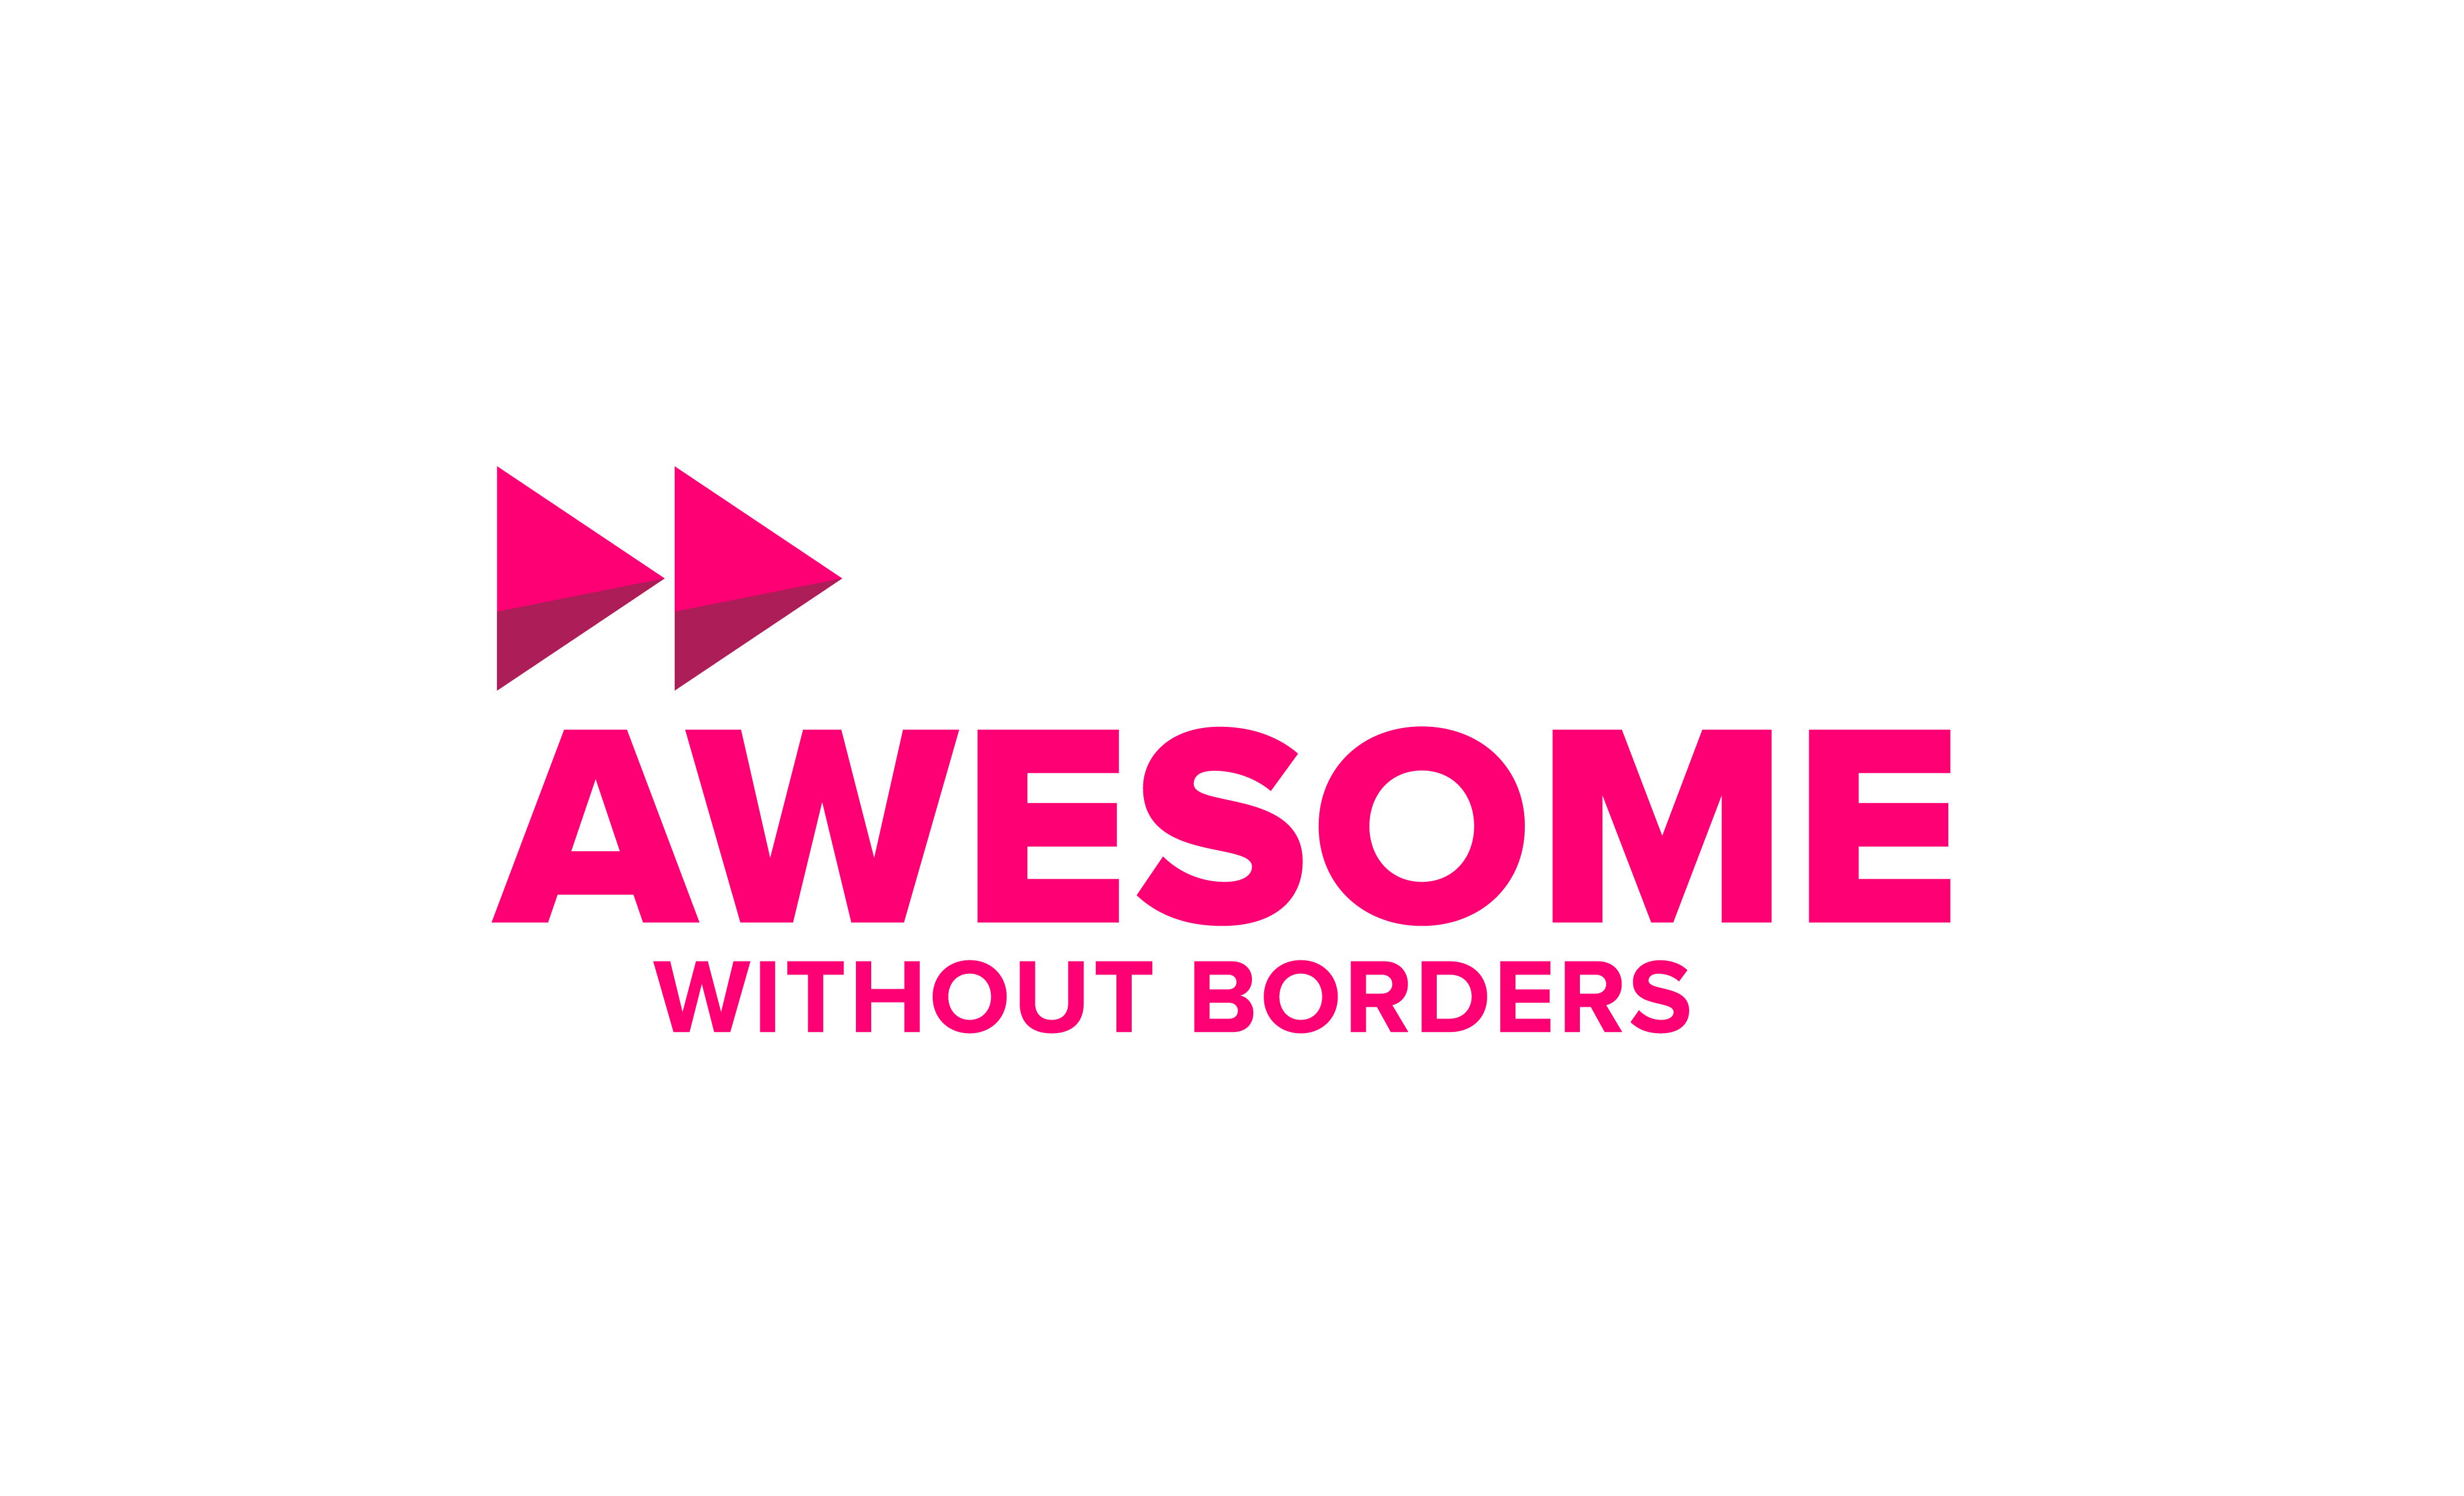 Awesome Without Borders